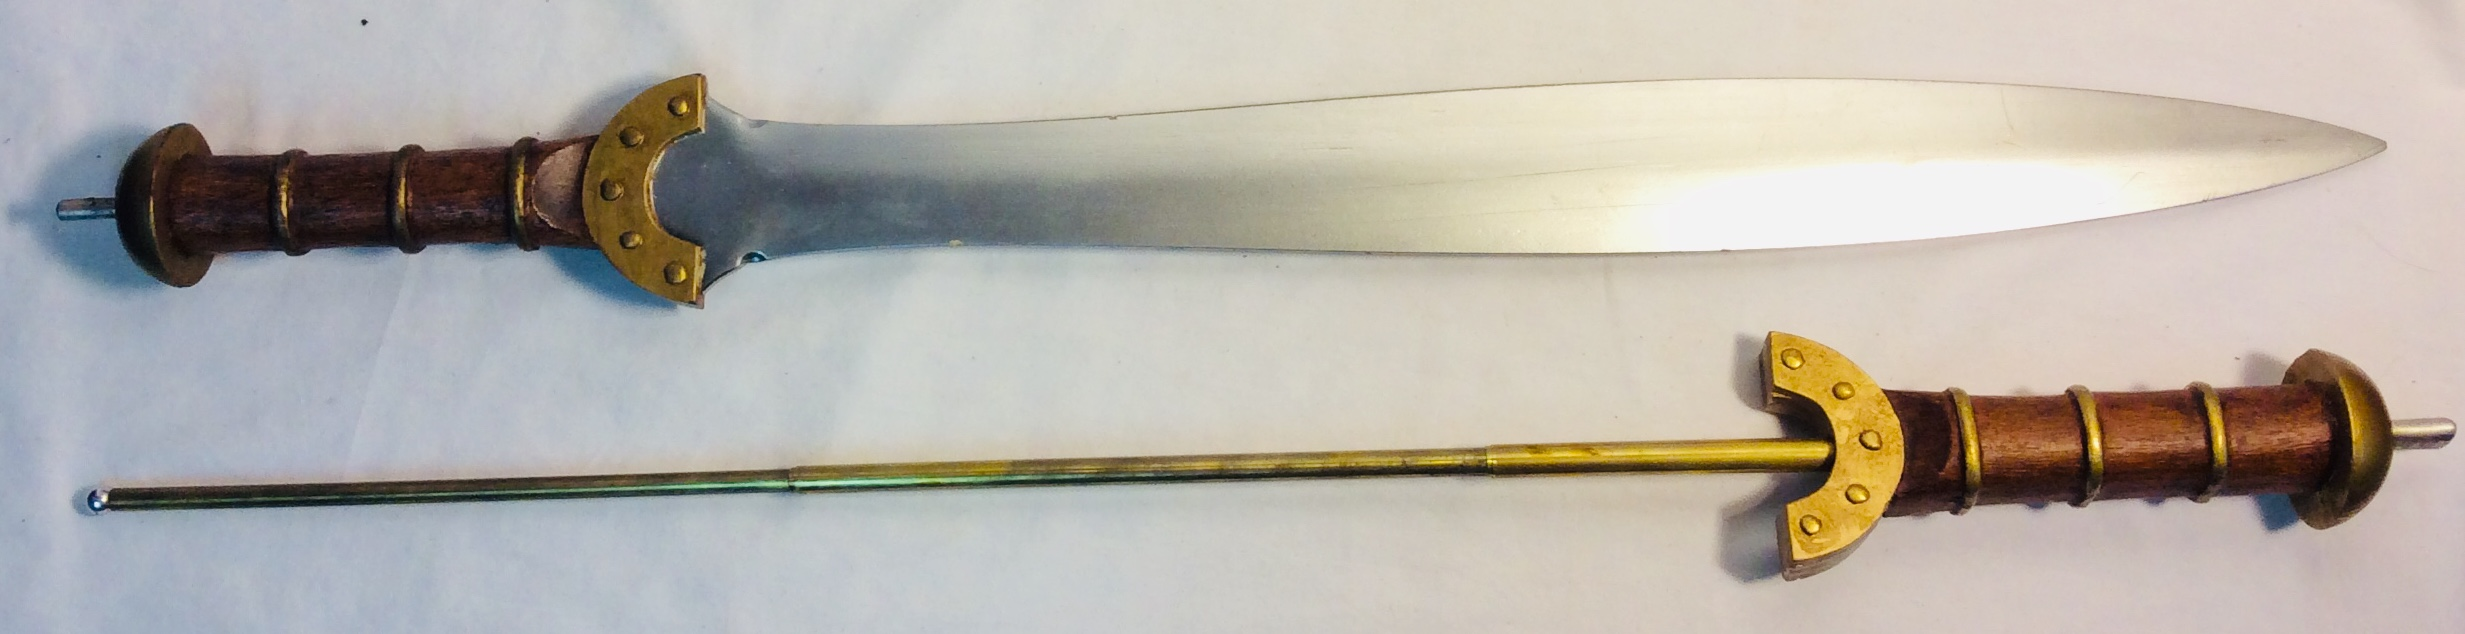 Viking sword with wooden handle and golden details x2 rubber x2 VFX x1 handle only